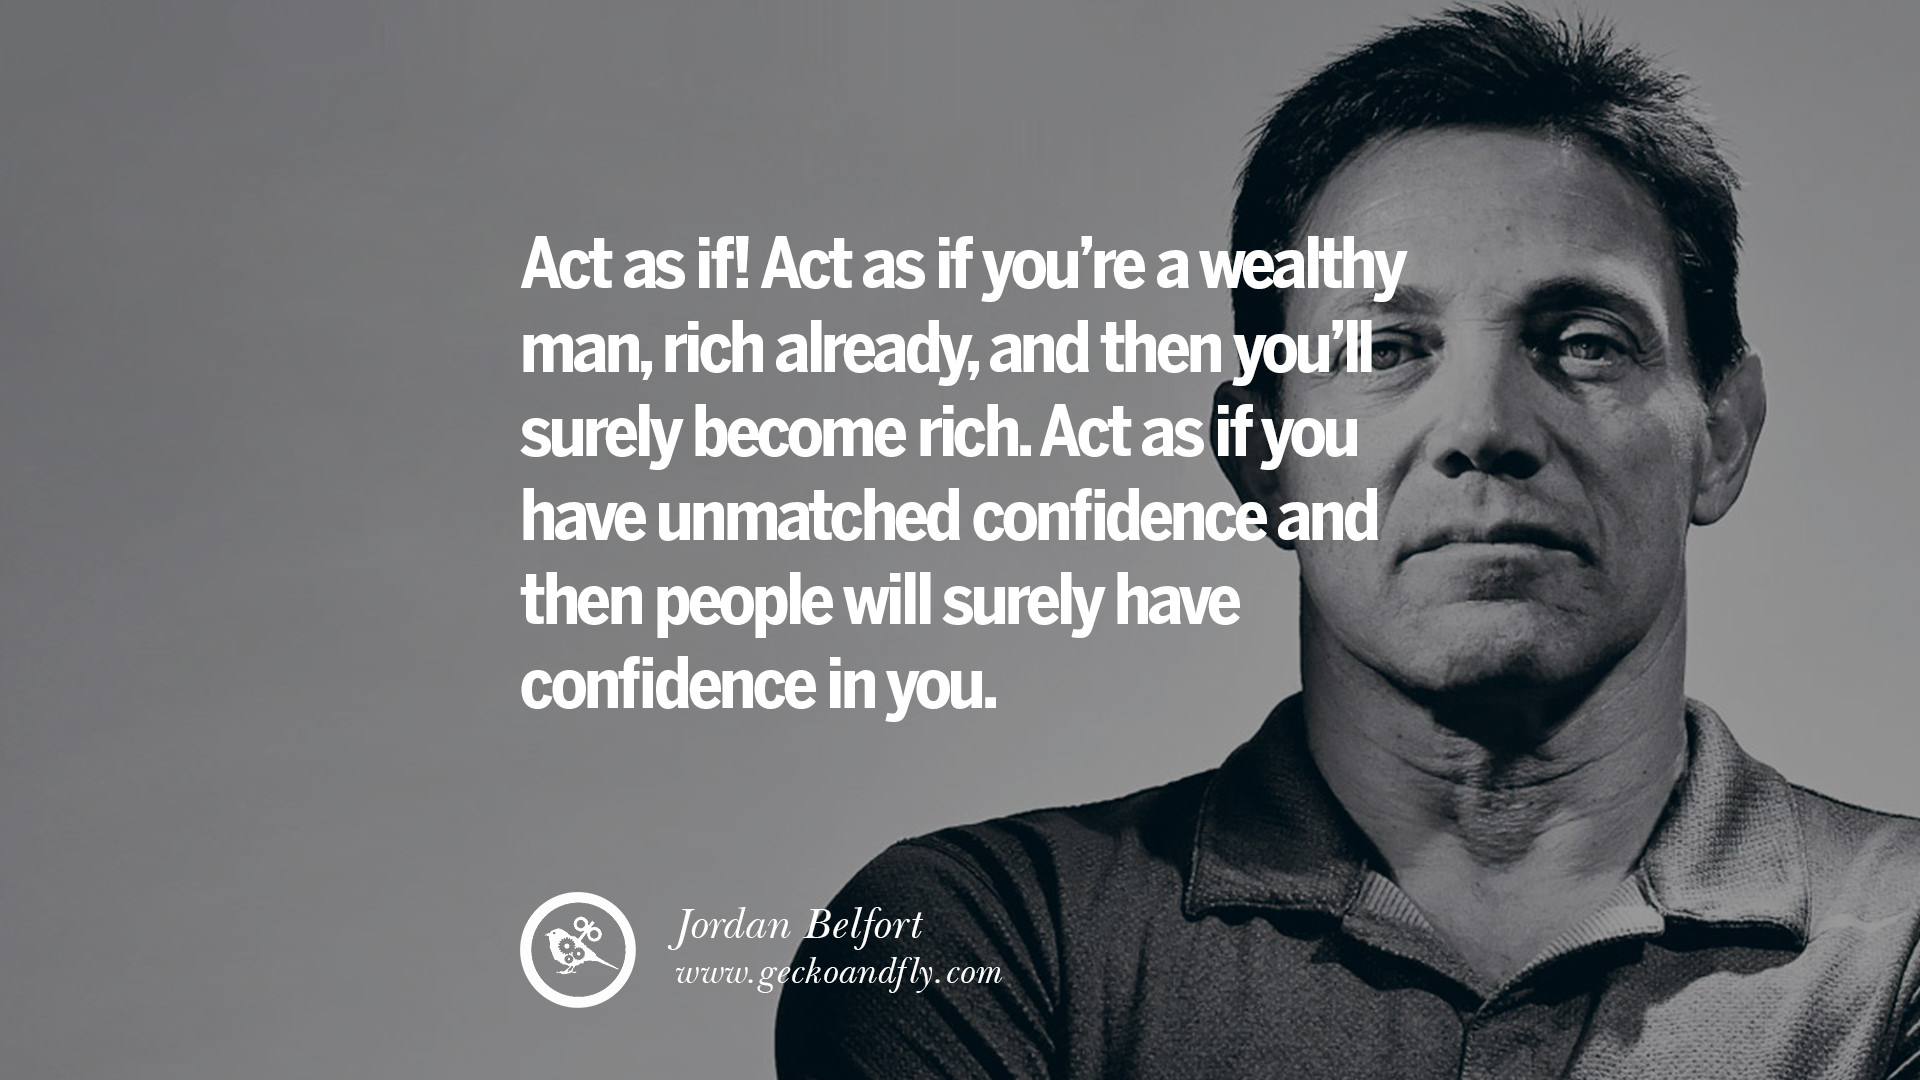 Best Sales Quotes 13 Empowering Jordan Belfort Quotes As Seen In Wolf Of Wall Street